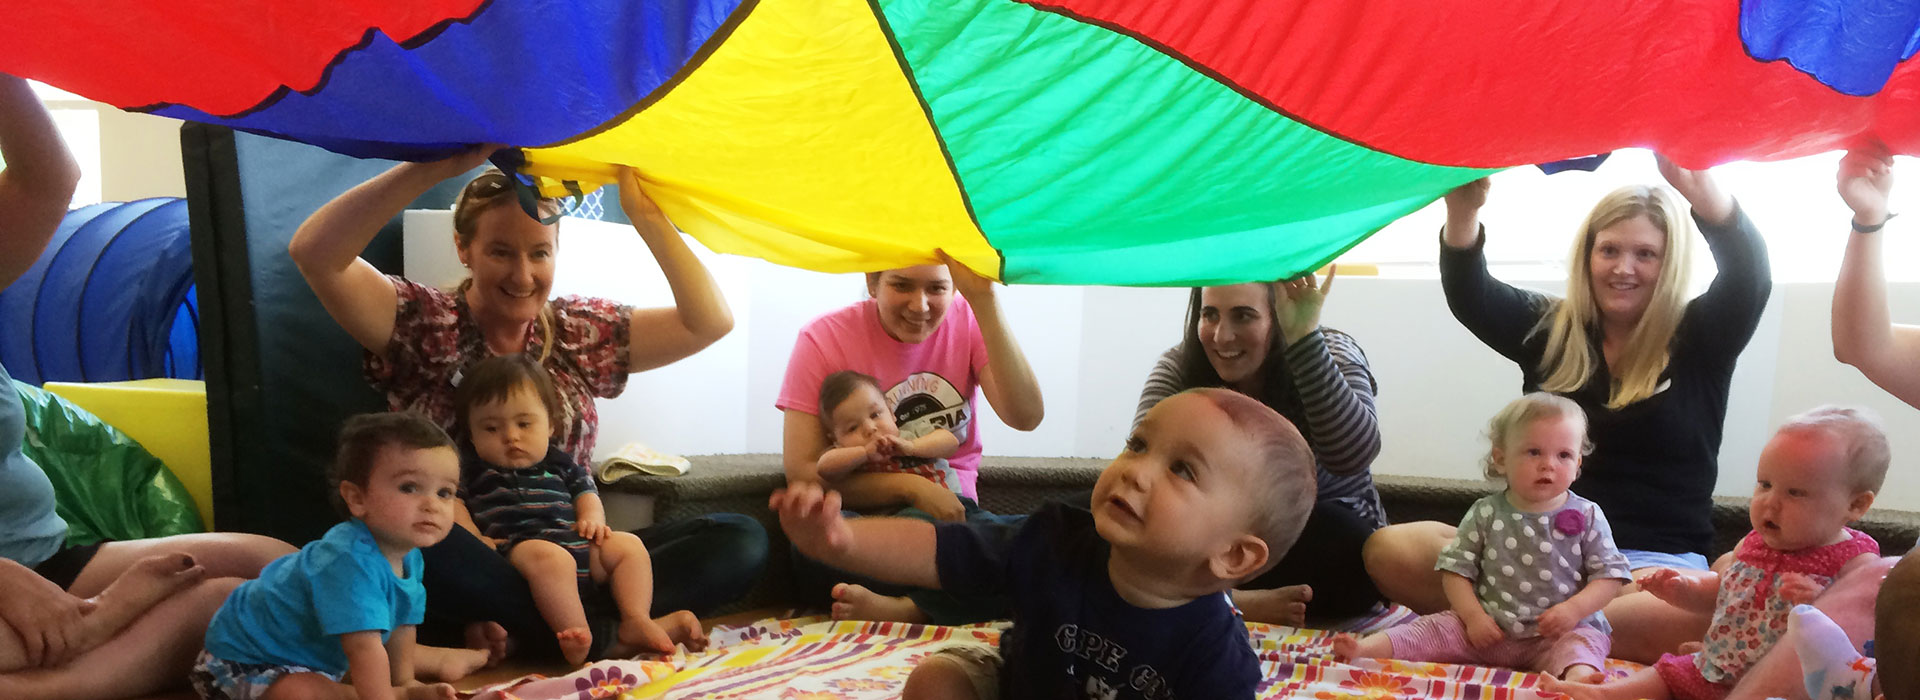 Early Intervention Baby Group